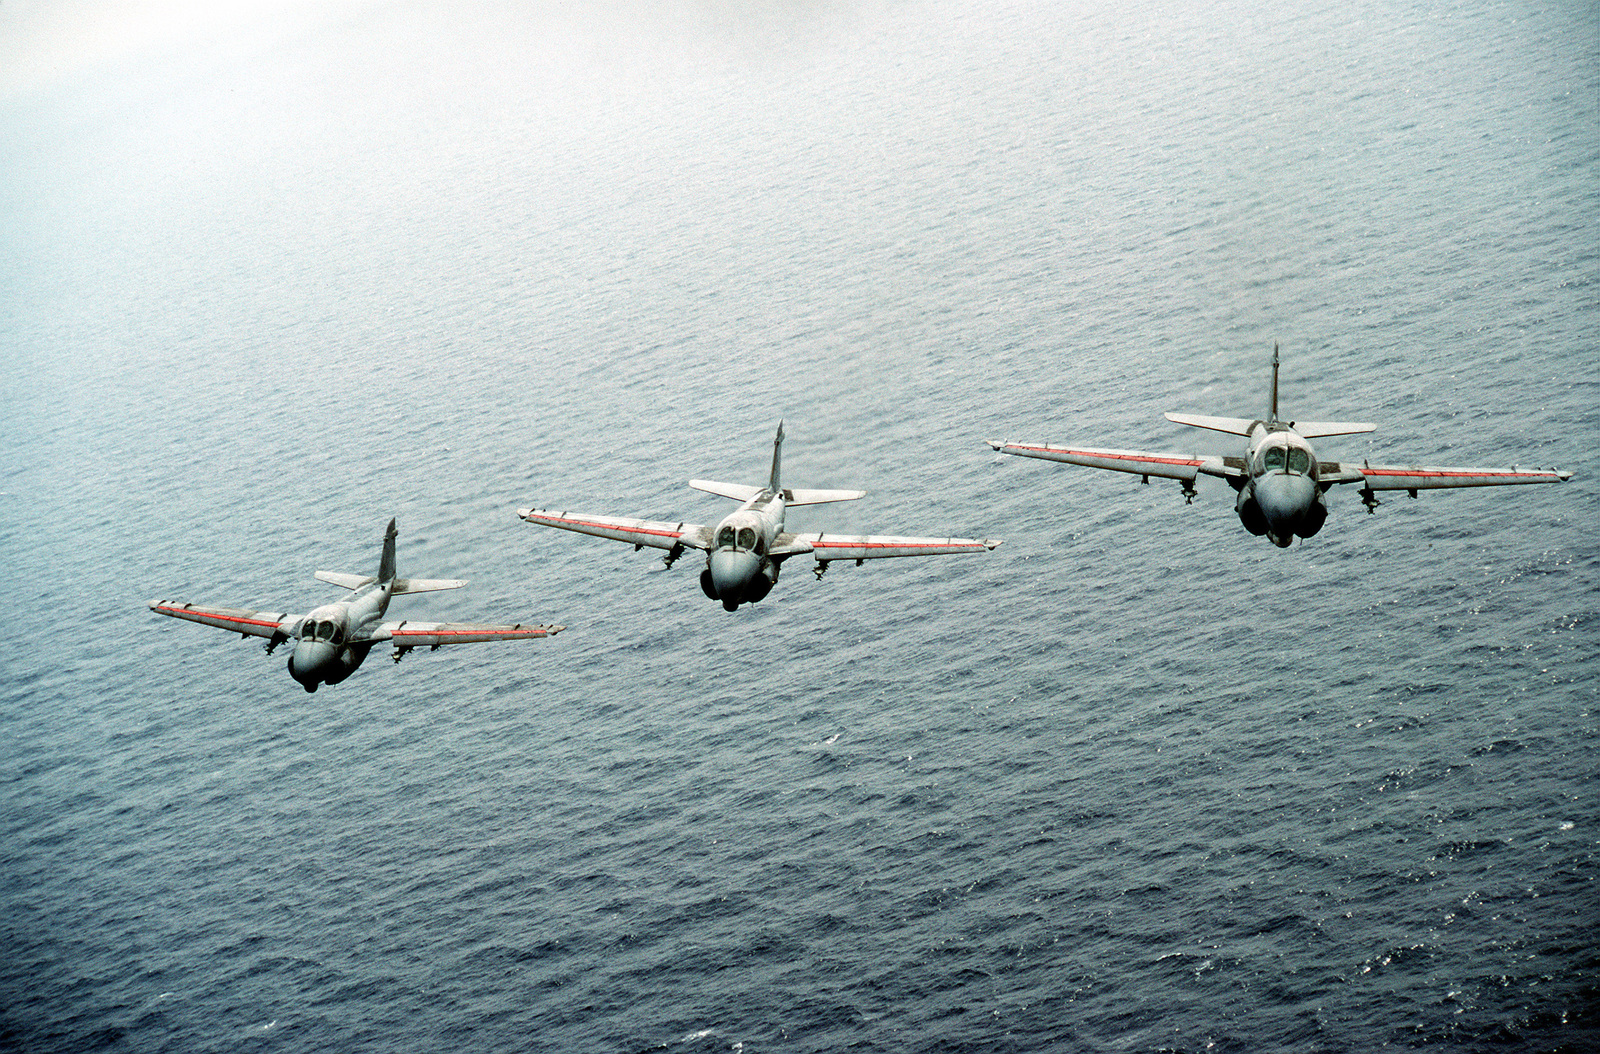 An air-to-air front view of three A-6E Intruder aircraft from Attack Squadron 34 (VA-34) during their deployment aboard the USS DWIGHT D. EISENHOWER (CVN-69). Exact Date Shot Unknown